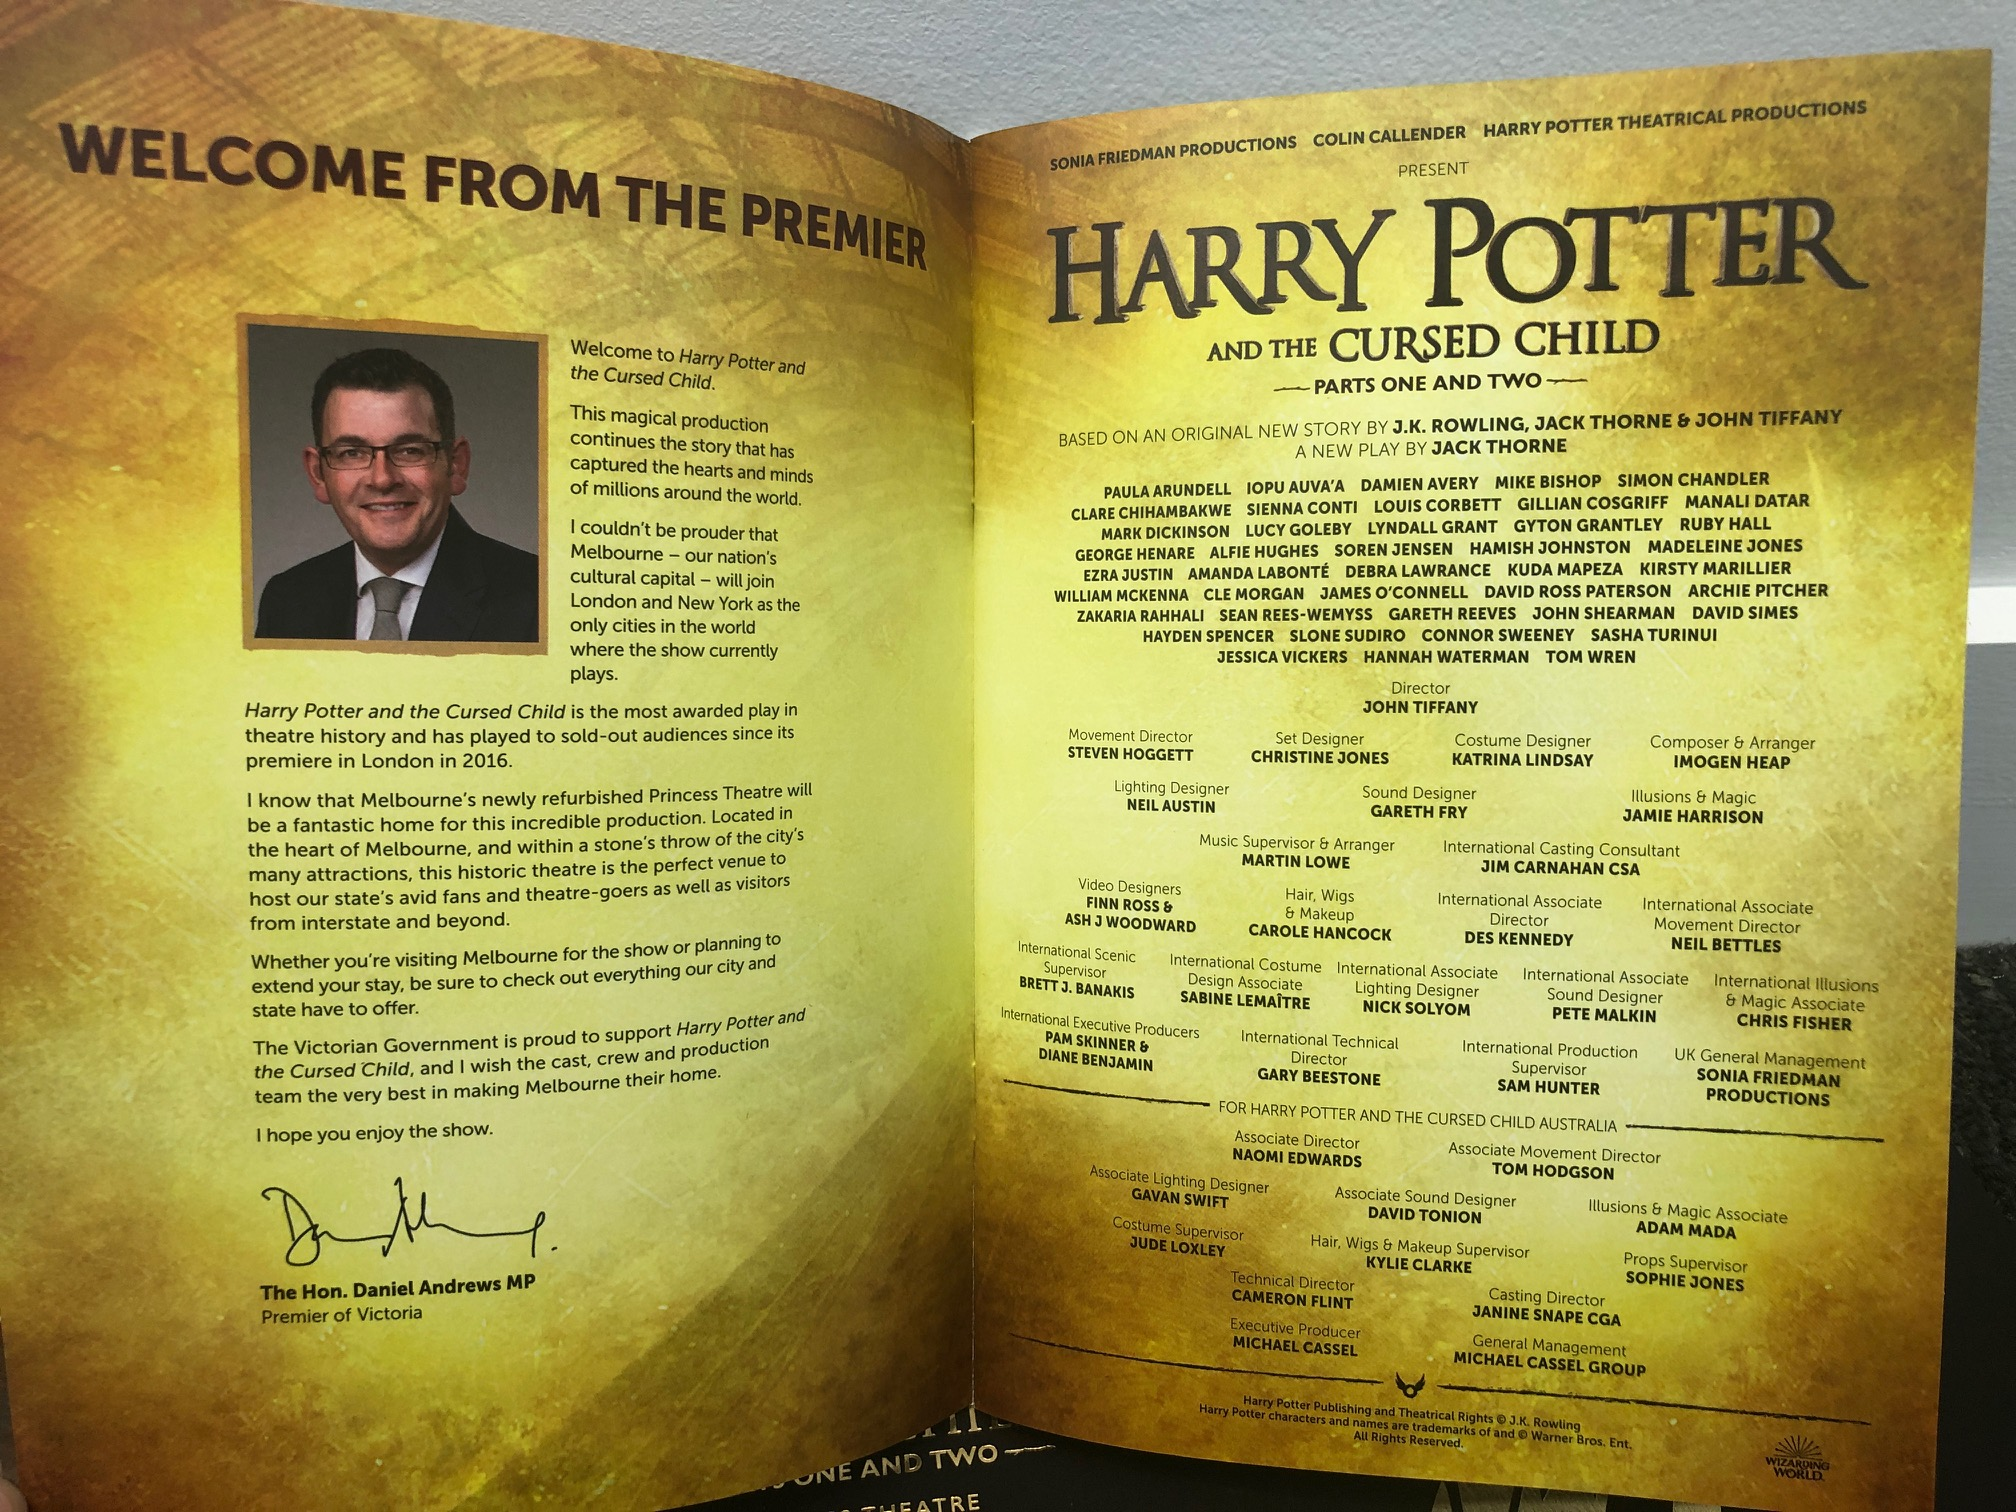 """Welcome message from """"Harry Potter and the Cursed Child"""" souvenir brochure and programs from the Melbourne, Australia, premiere on February 22, 2019"""